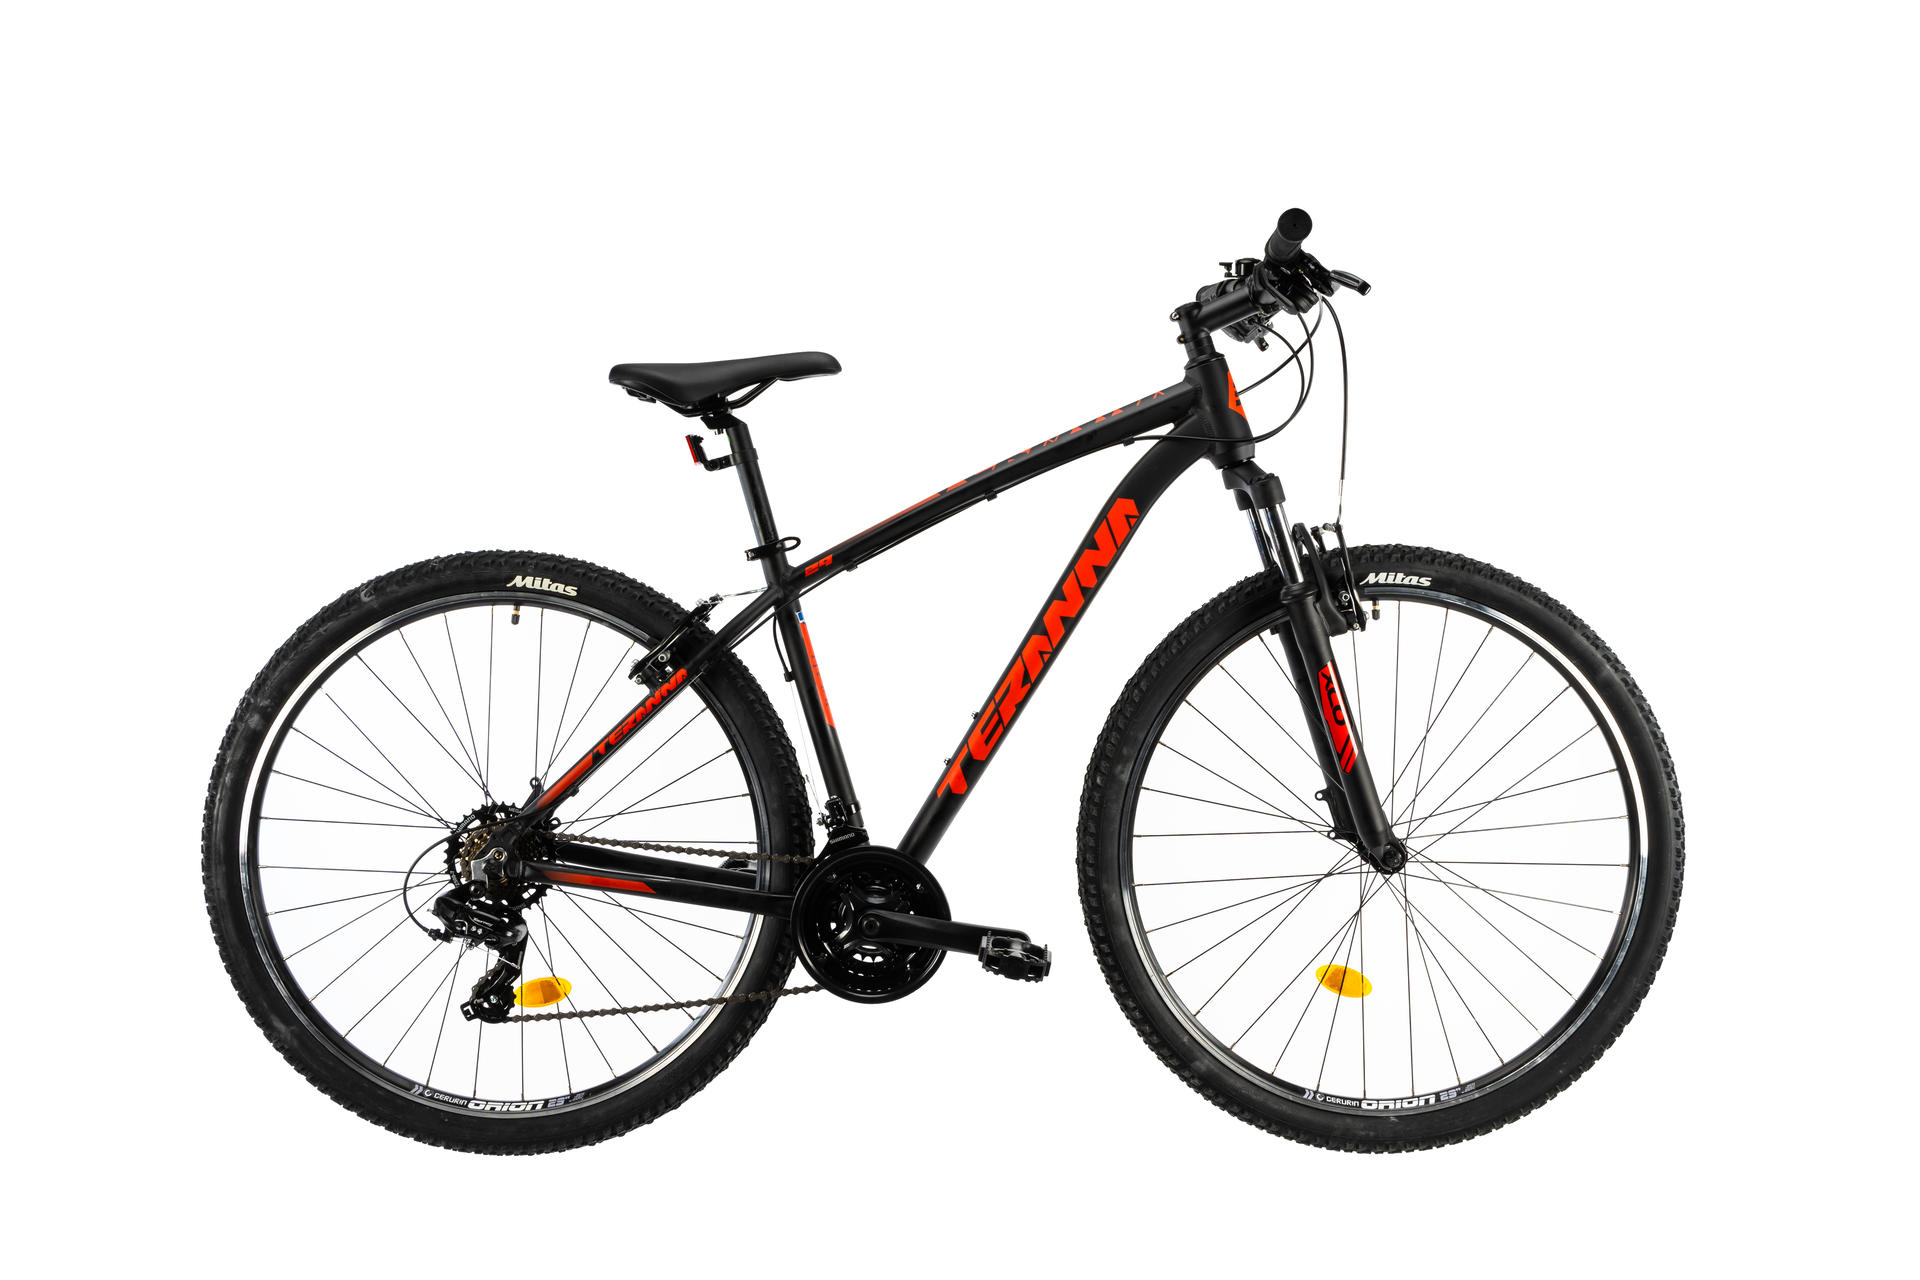 Mountain bike DHS 2923 Black 457mm